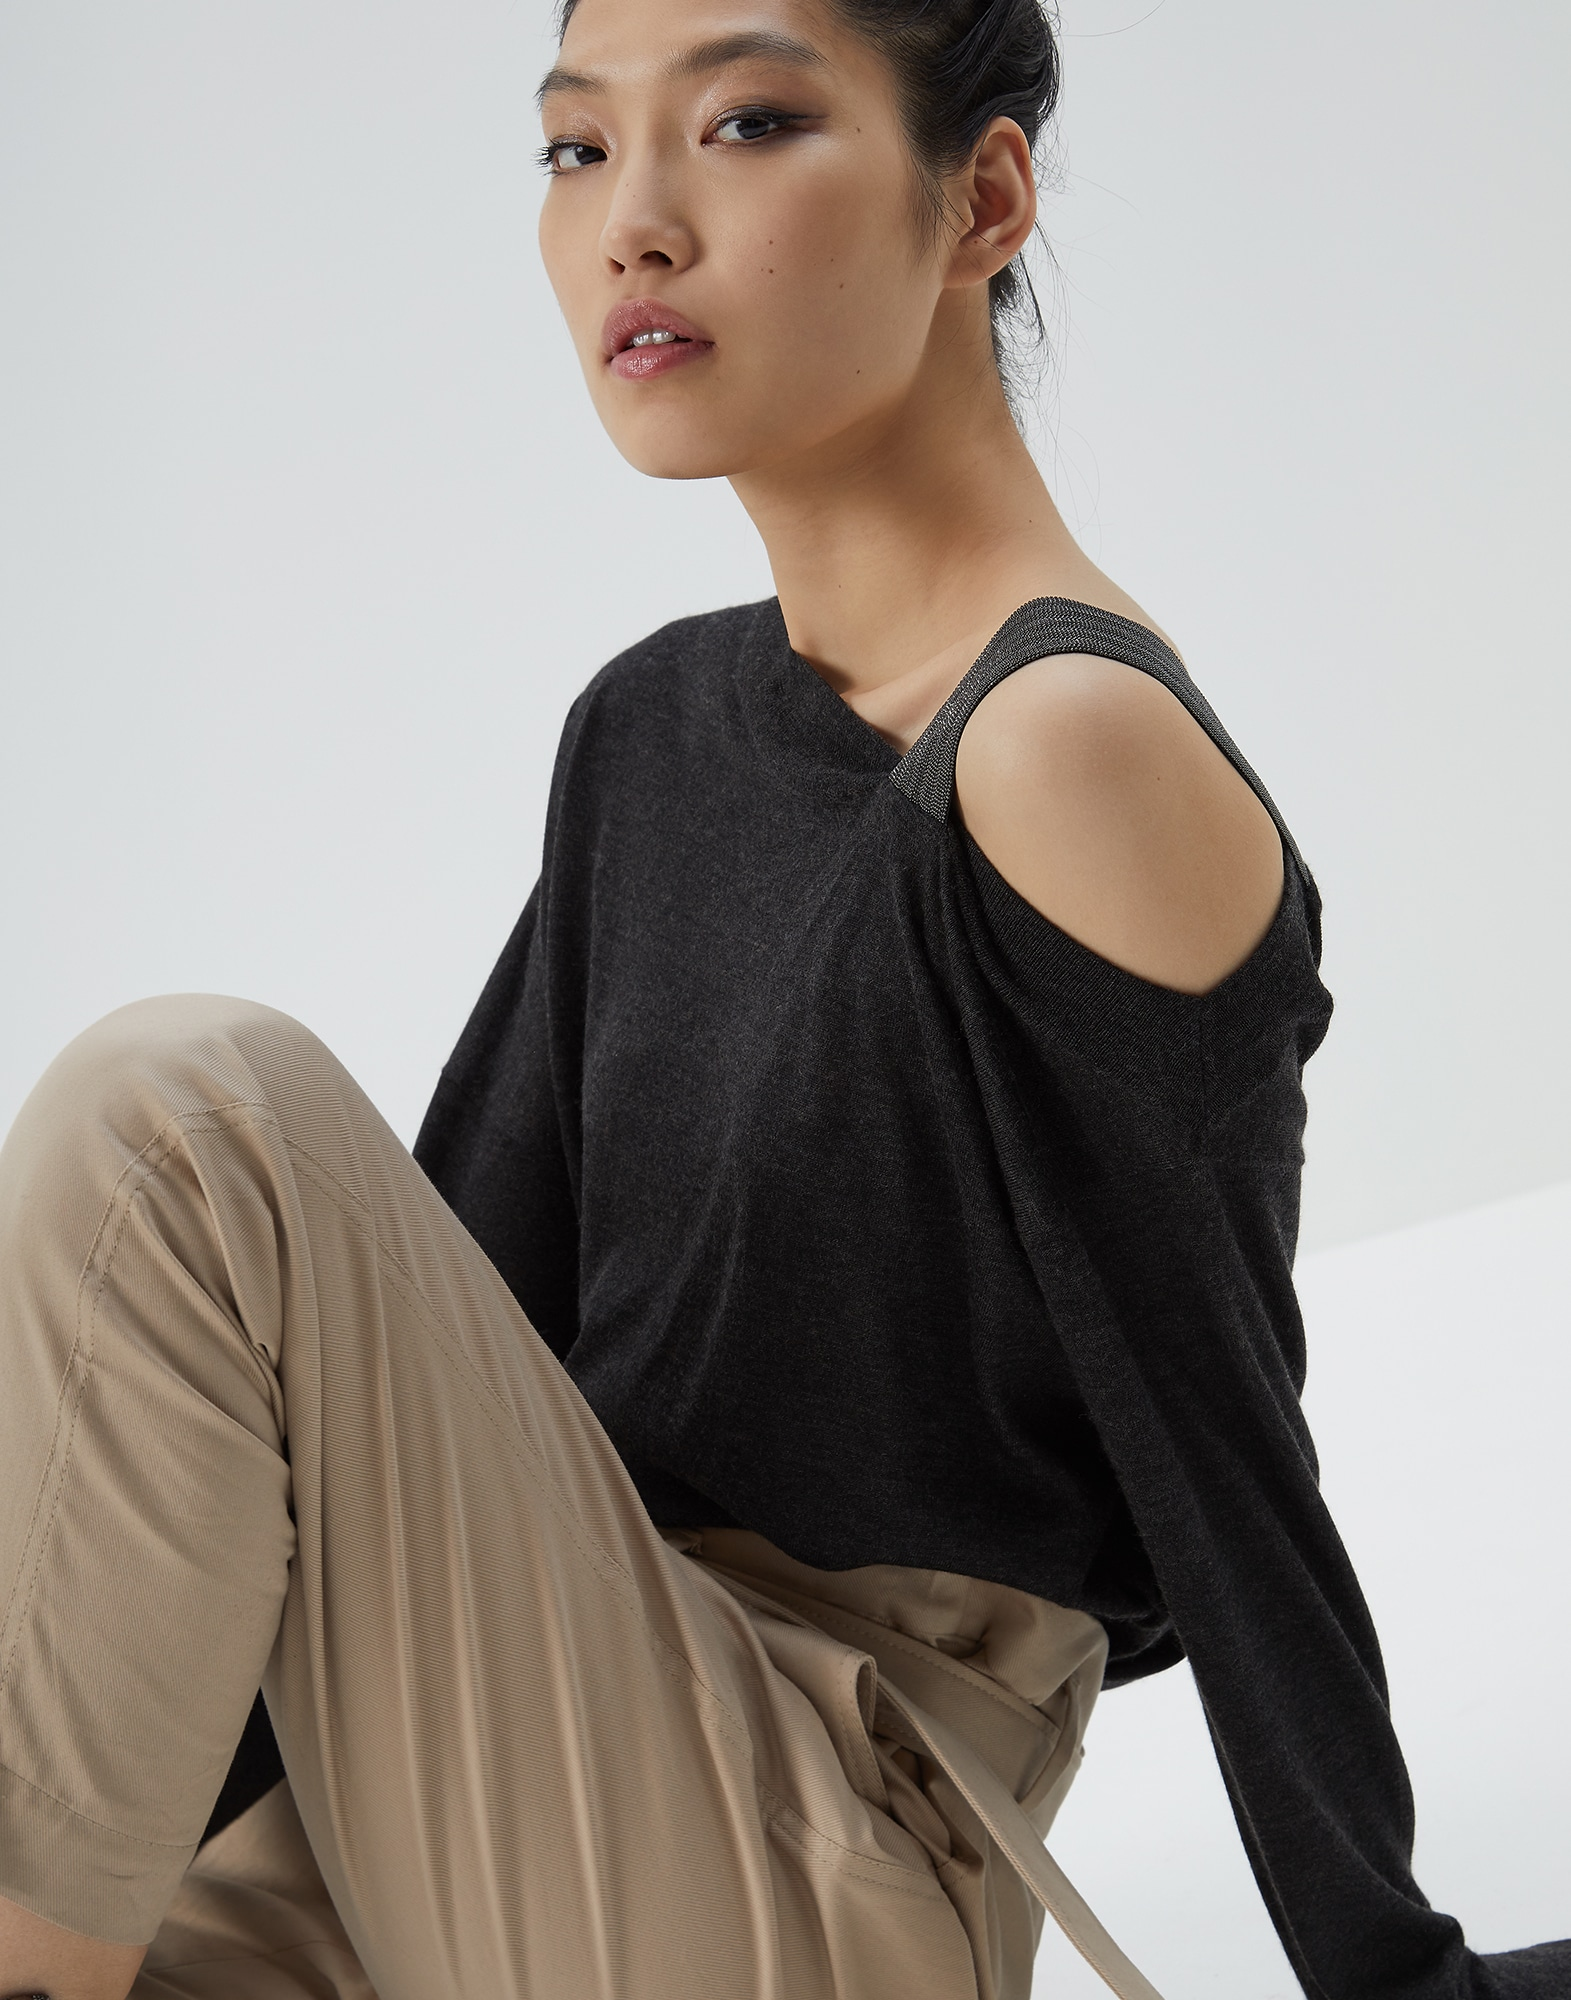 Scoop Neck - Editorial view